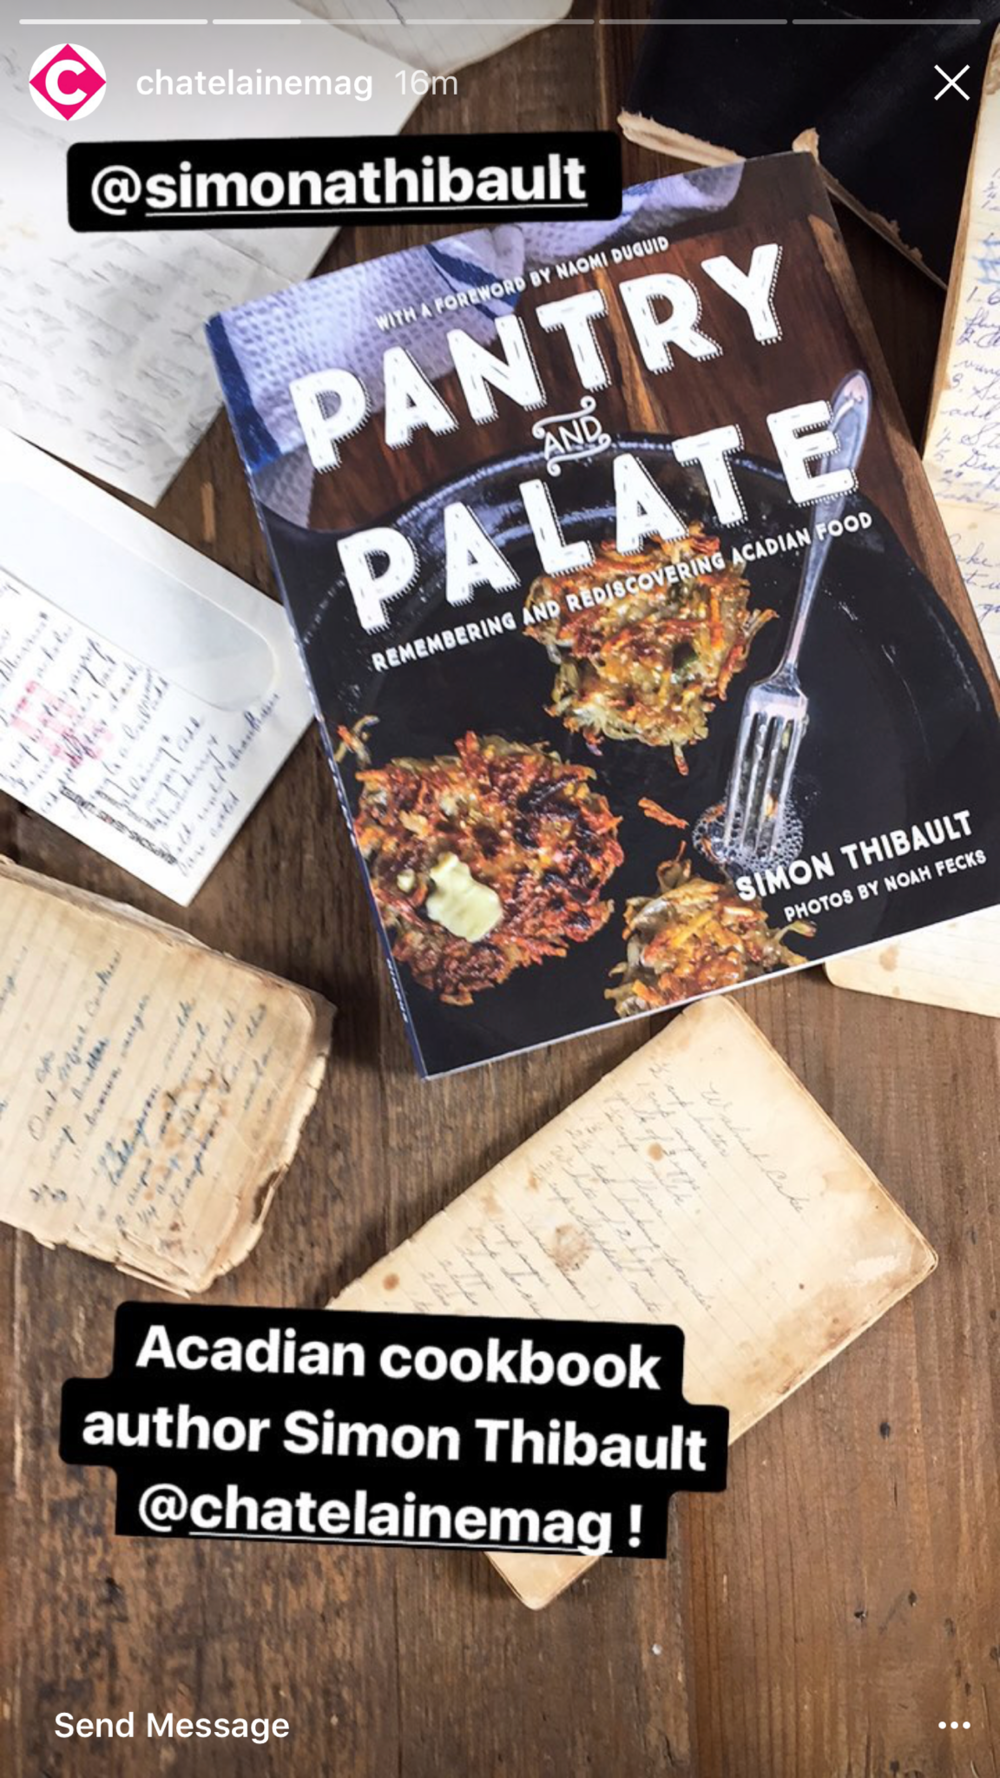 A glimpse of Chatelaine's Instagram Stories promoting  Pantry and Palate .